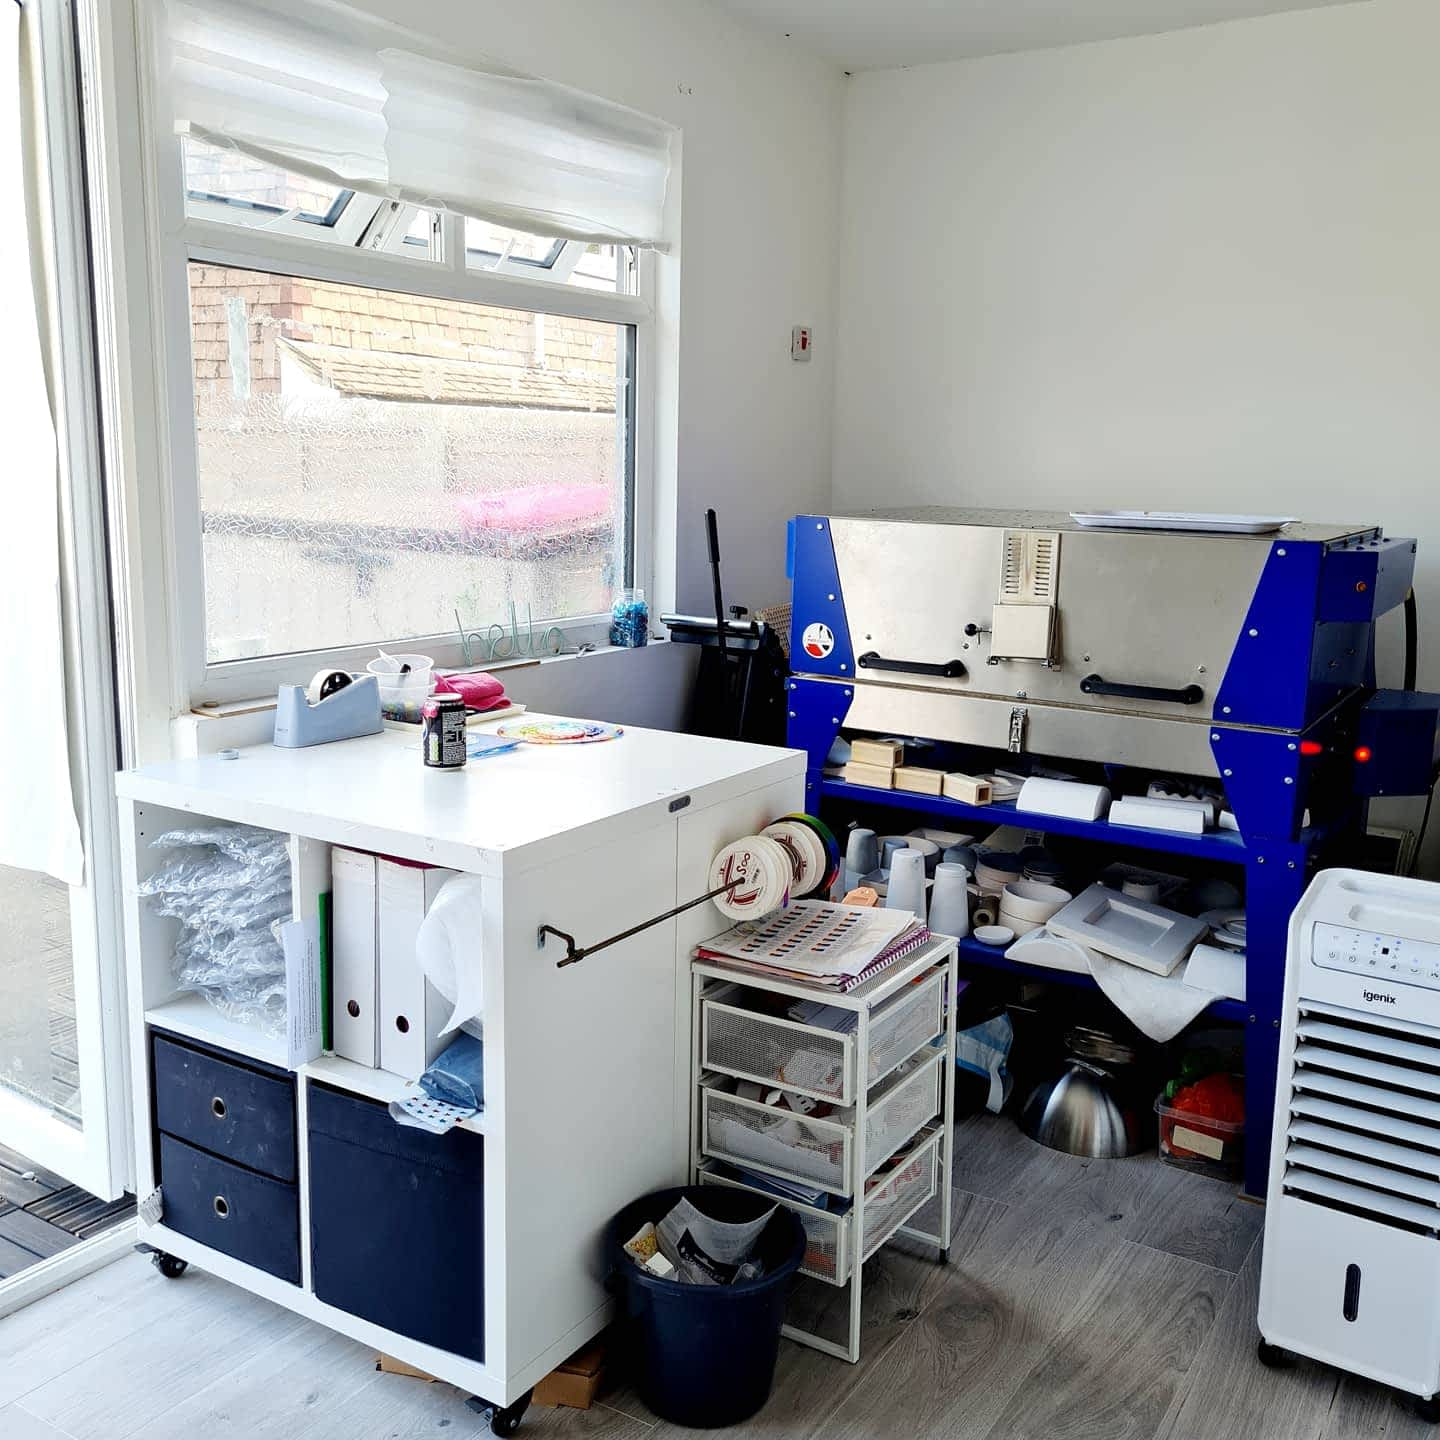 My workshop woth packaging area and kiln